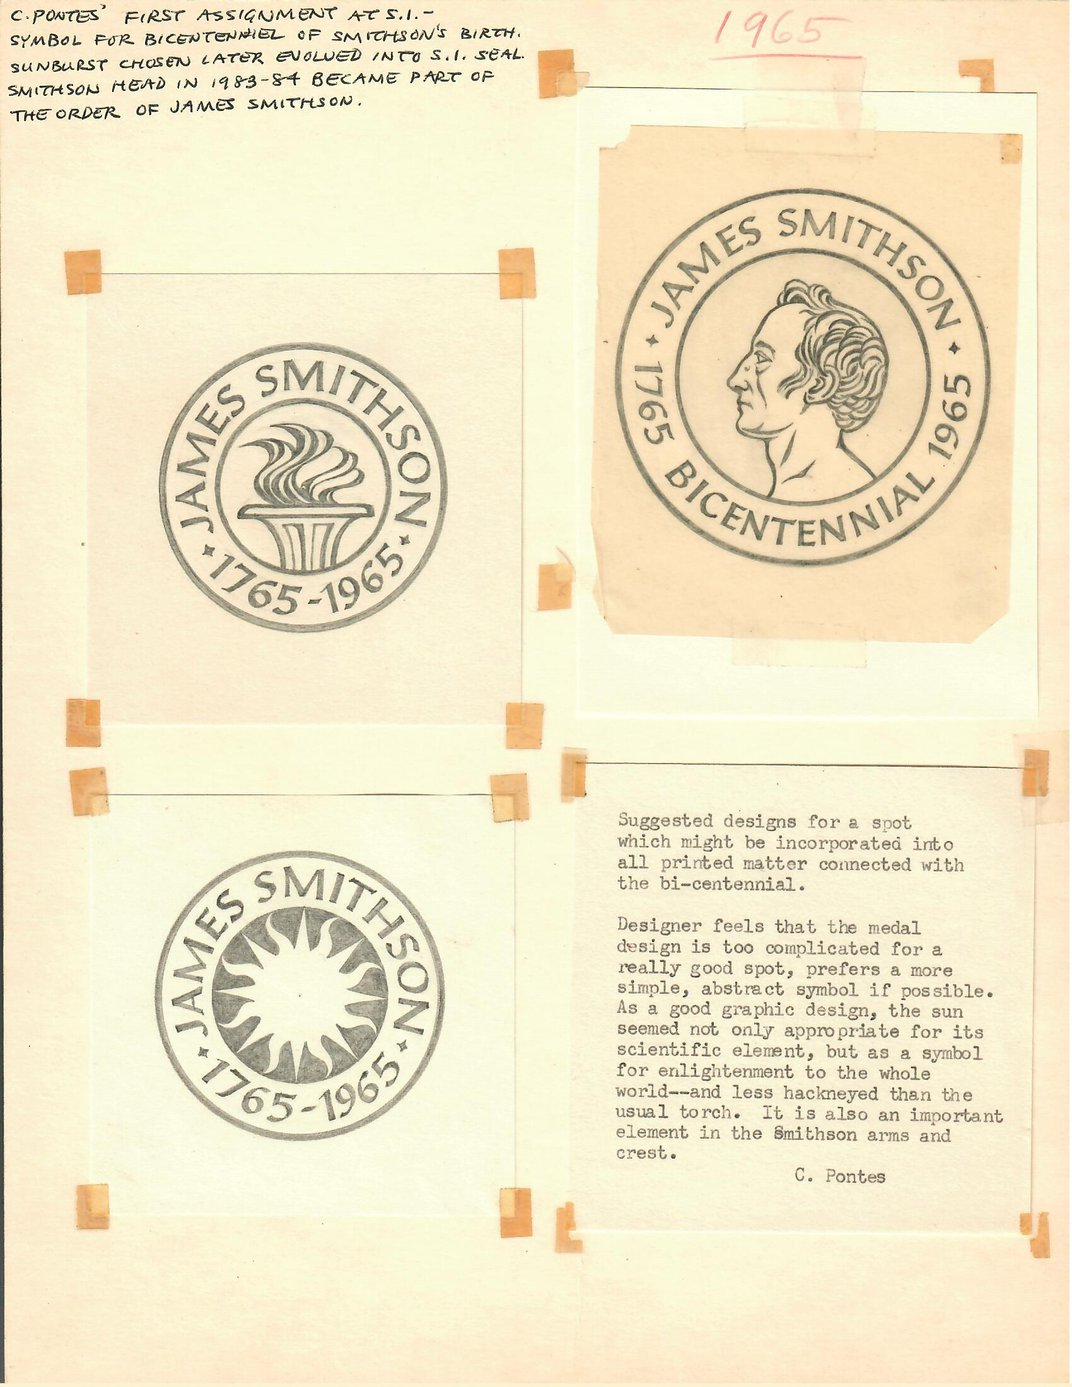 Original drawings and notes by Crimilda Pontes, 1965, Courtesy of Smithsonian Archives, 89-024_Box 4